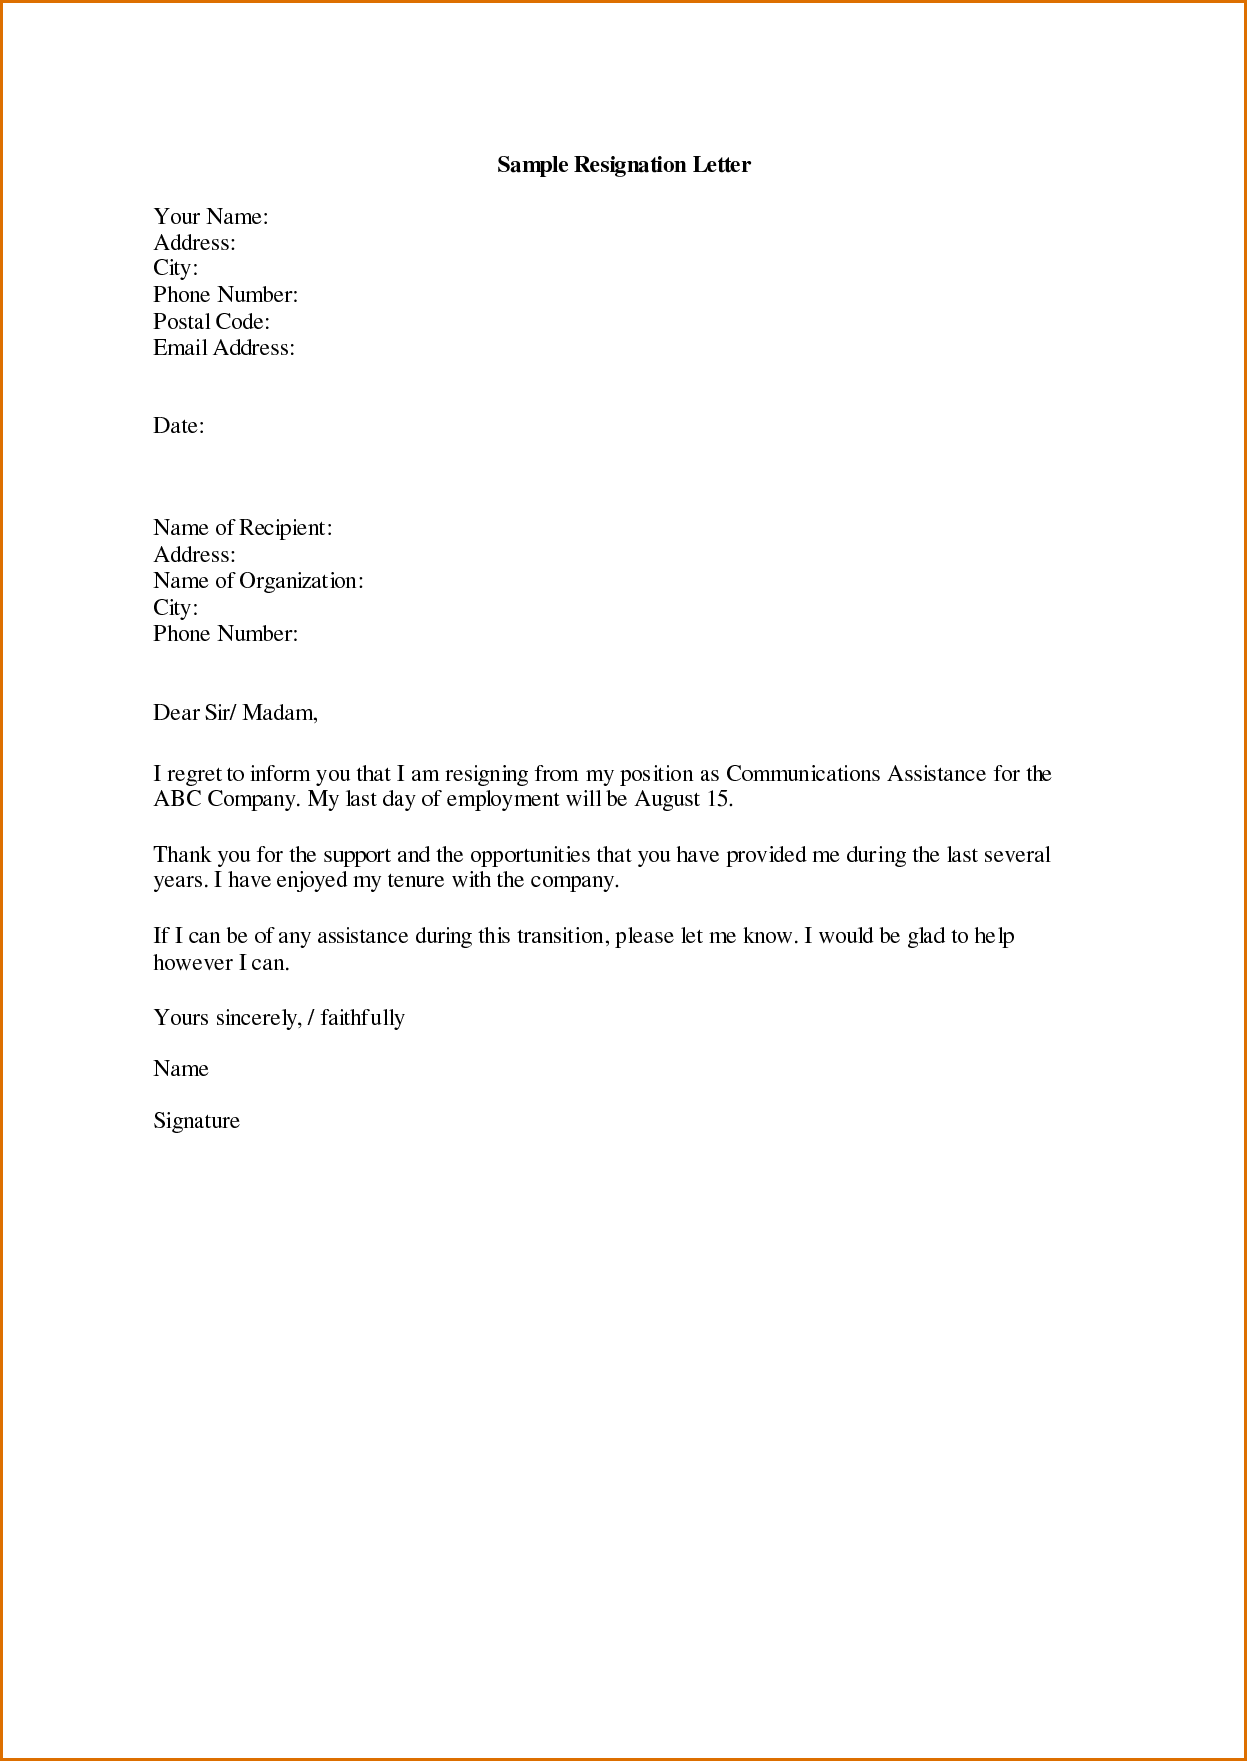 Letter Of Resignation Template Word Sample Displaying 16 Images For Letter Of Resignation Sample Toolbar .